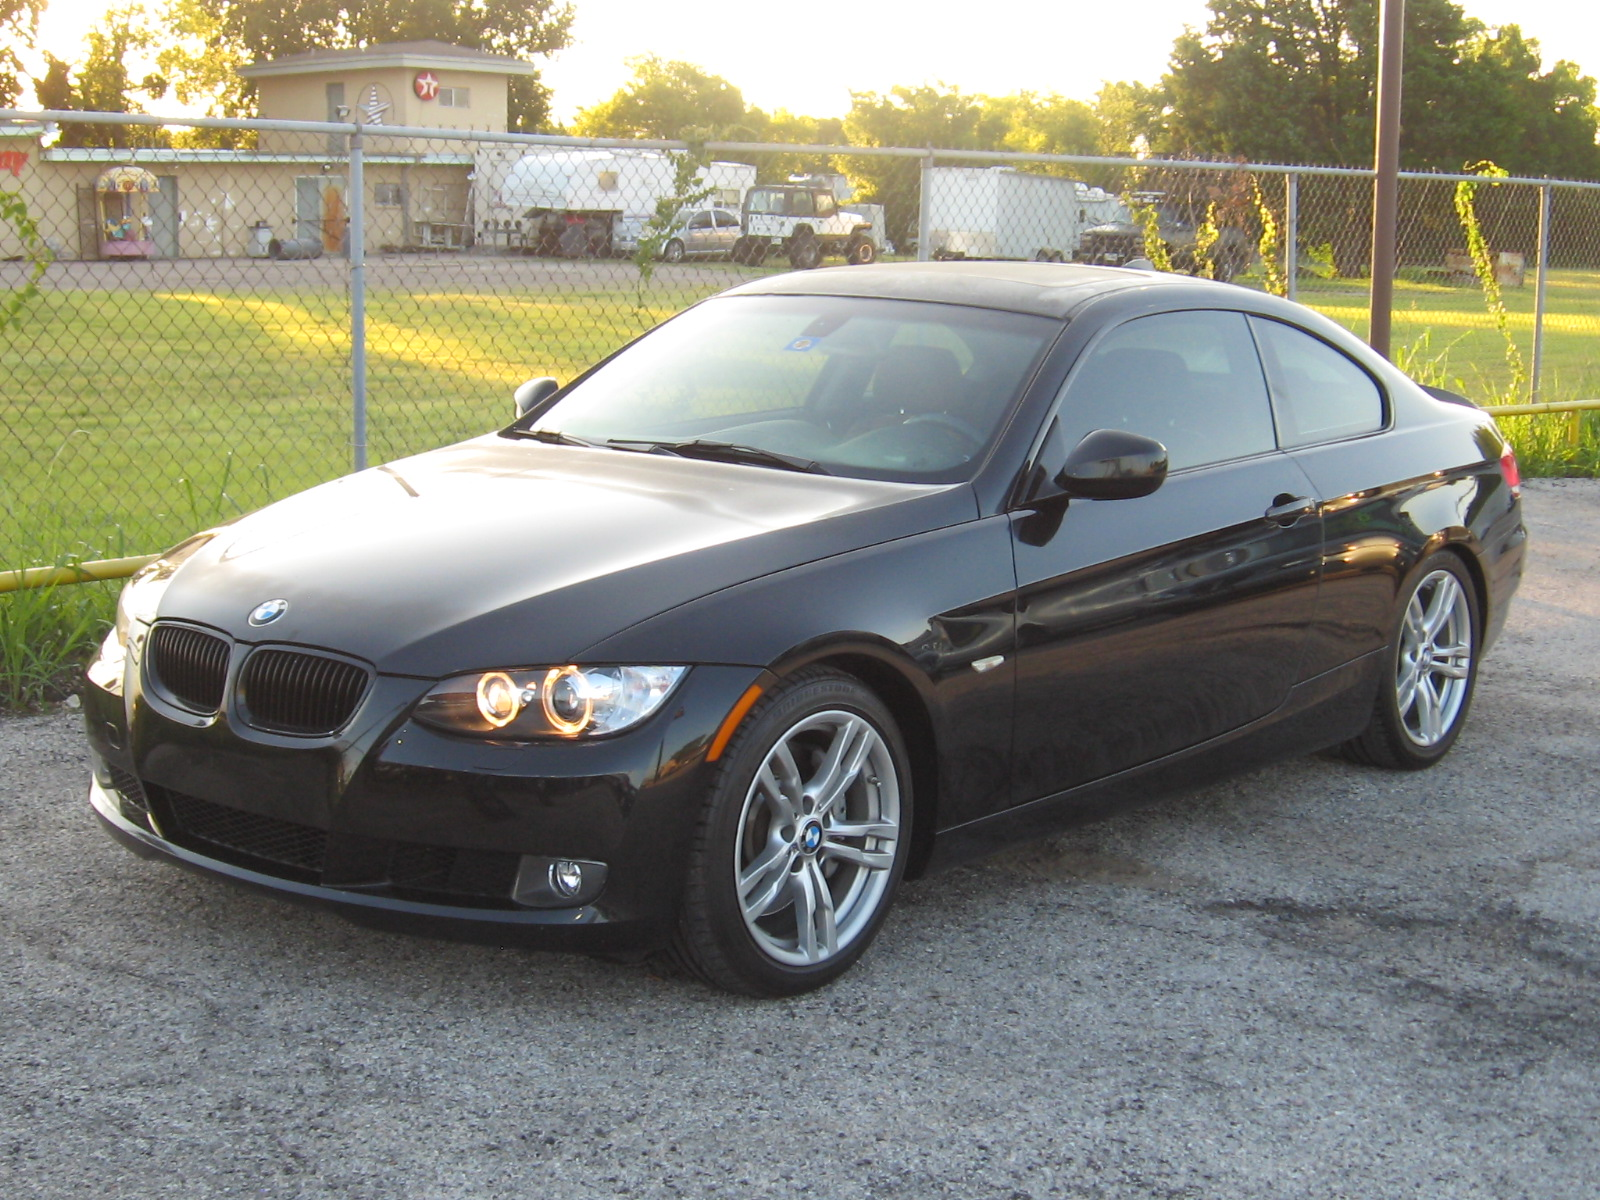 2010 bmw 335i coupe welcome to autoworldtx. Black Bedroom Furniture Sets. Home Design Ideas